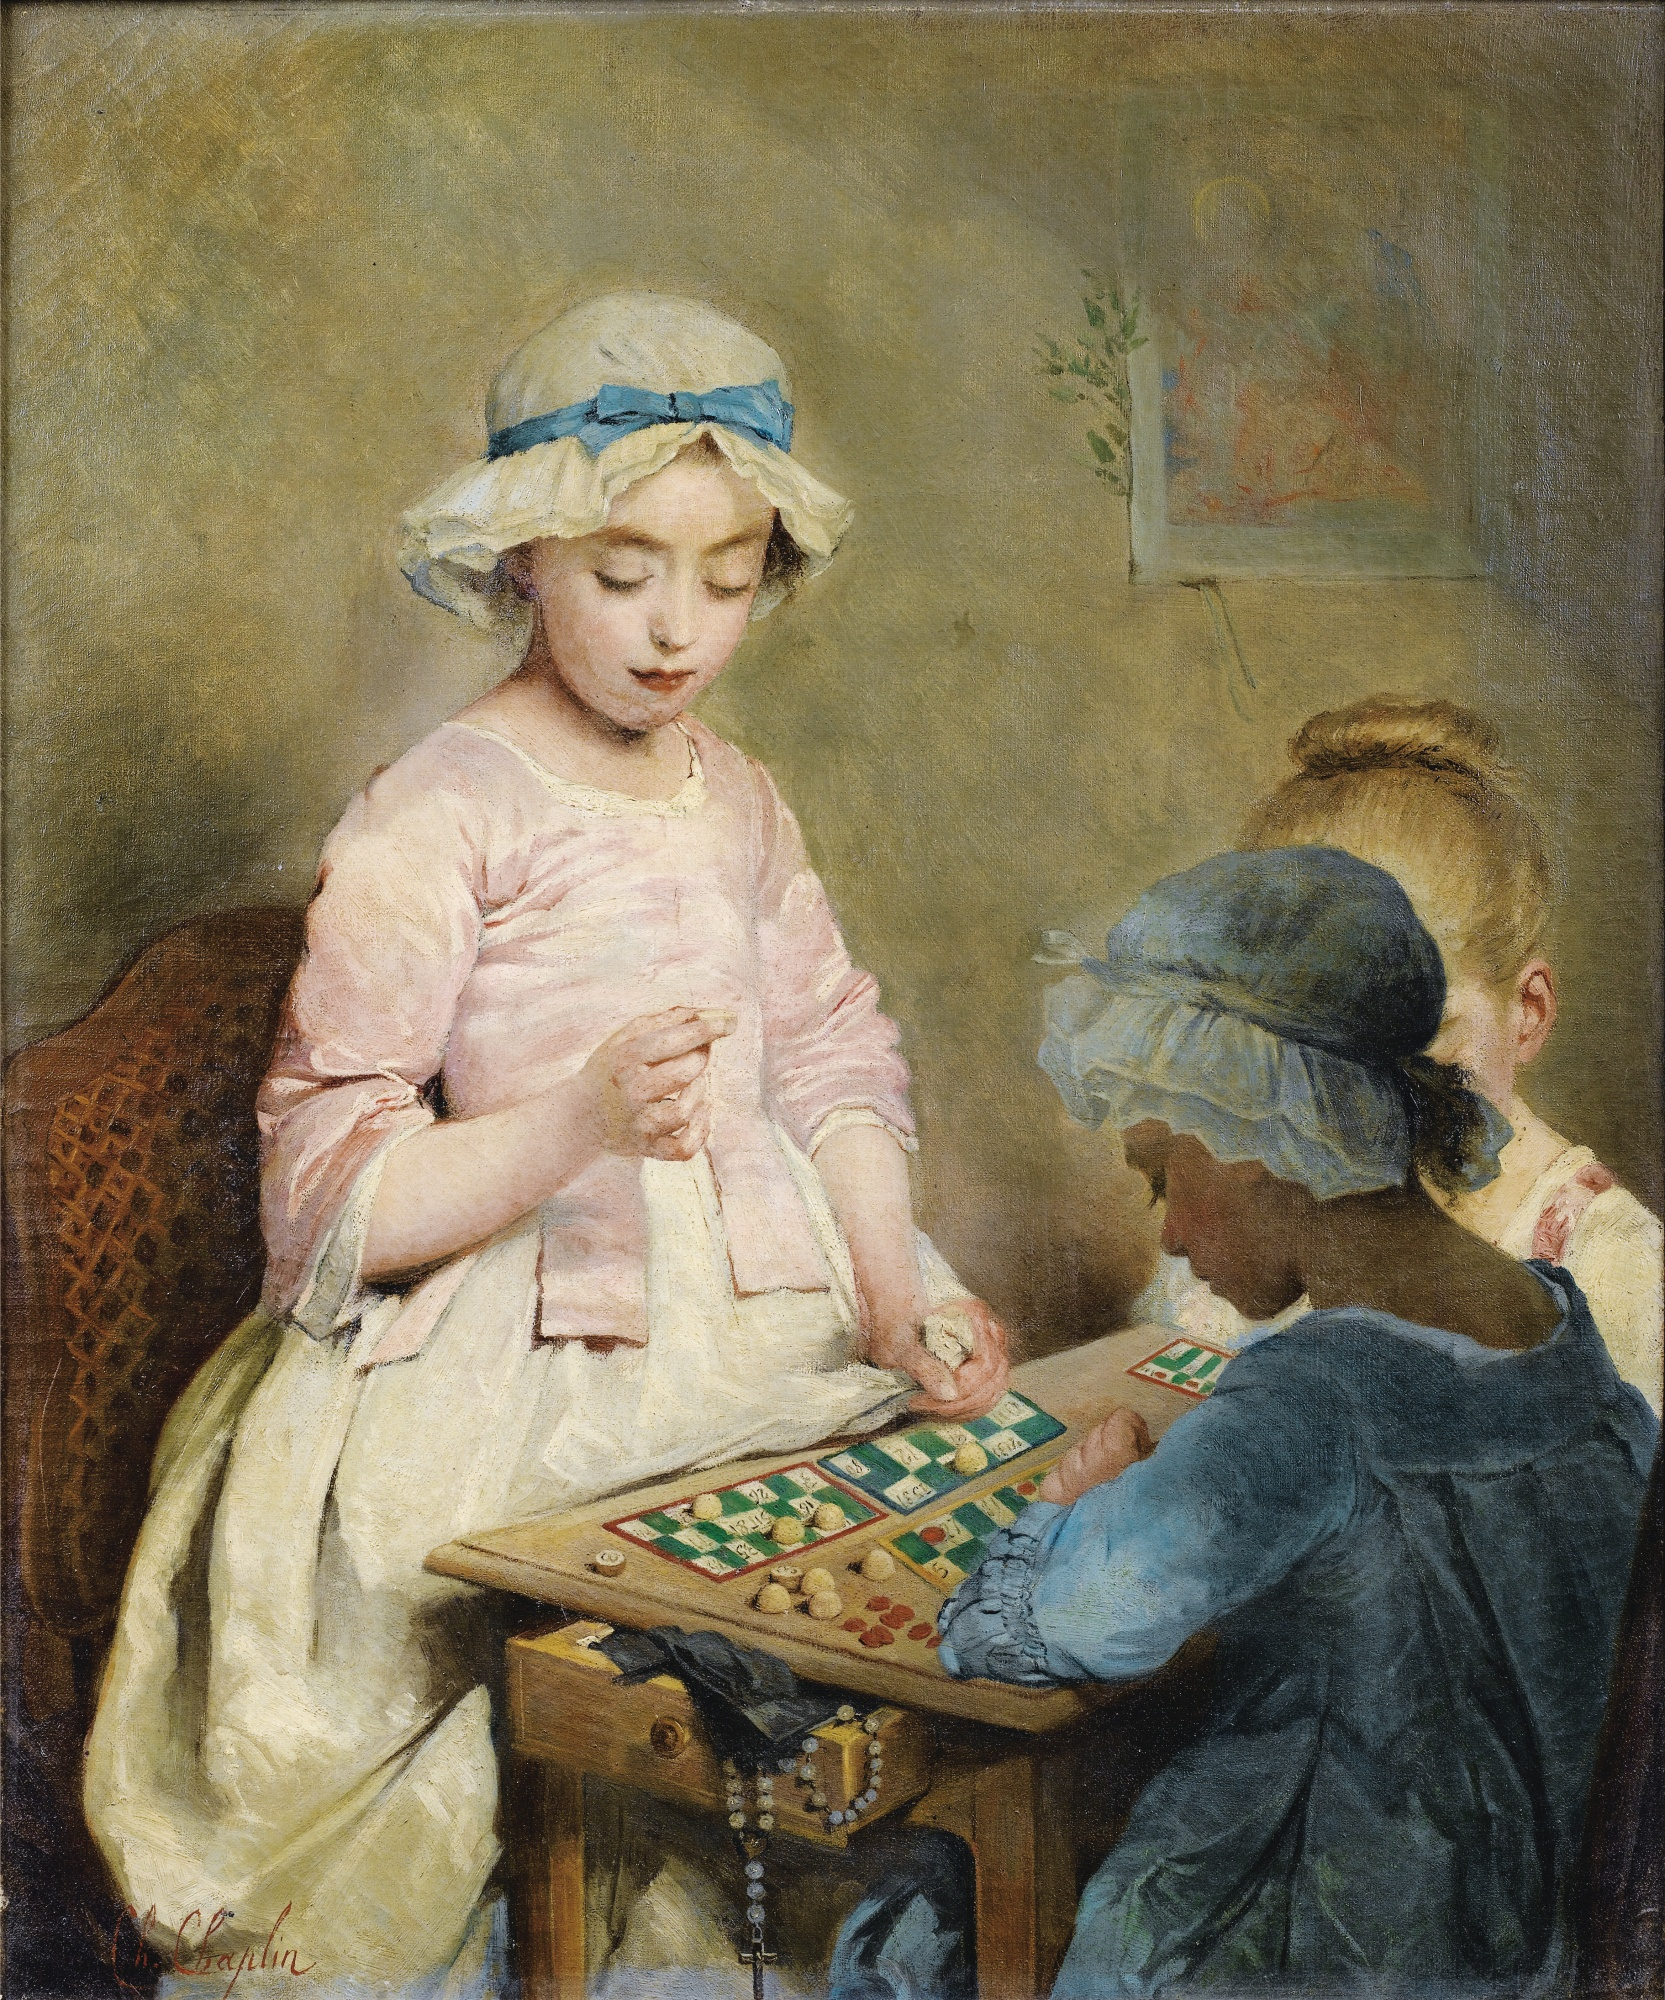 File:Chaplin-The Game of Lotto-1865.jpg